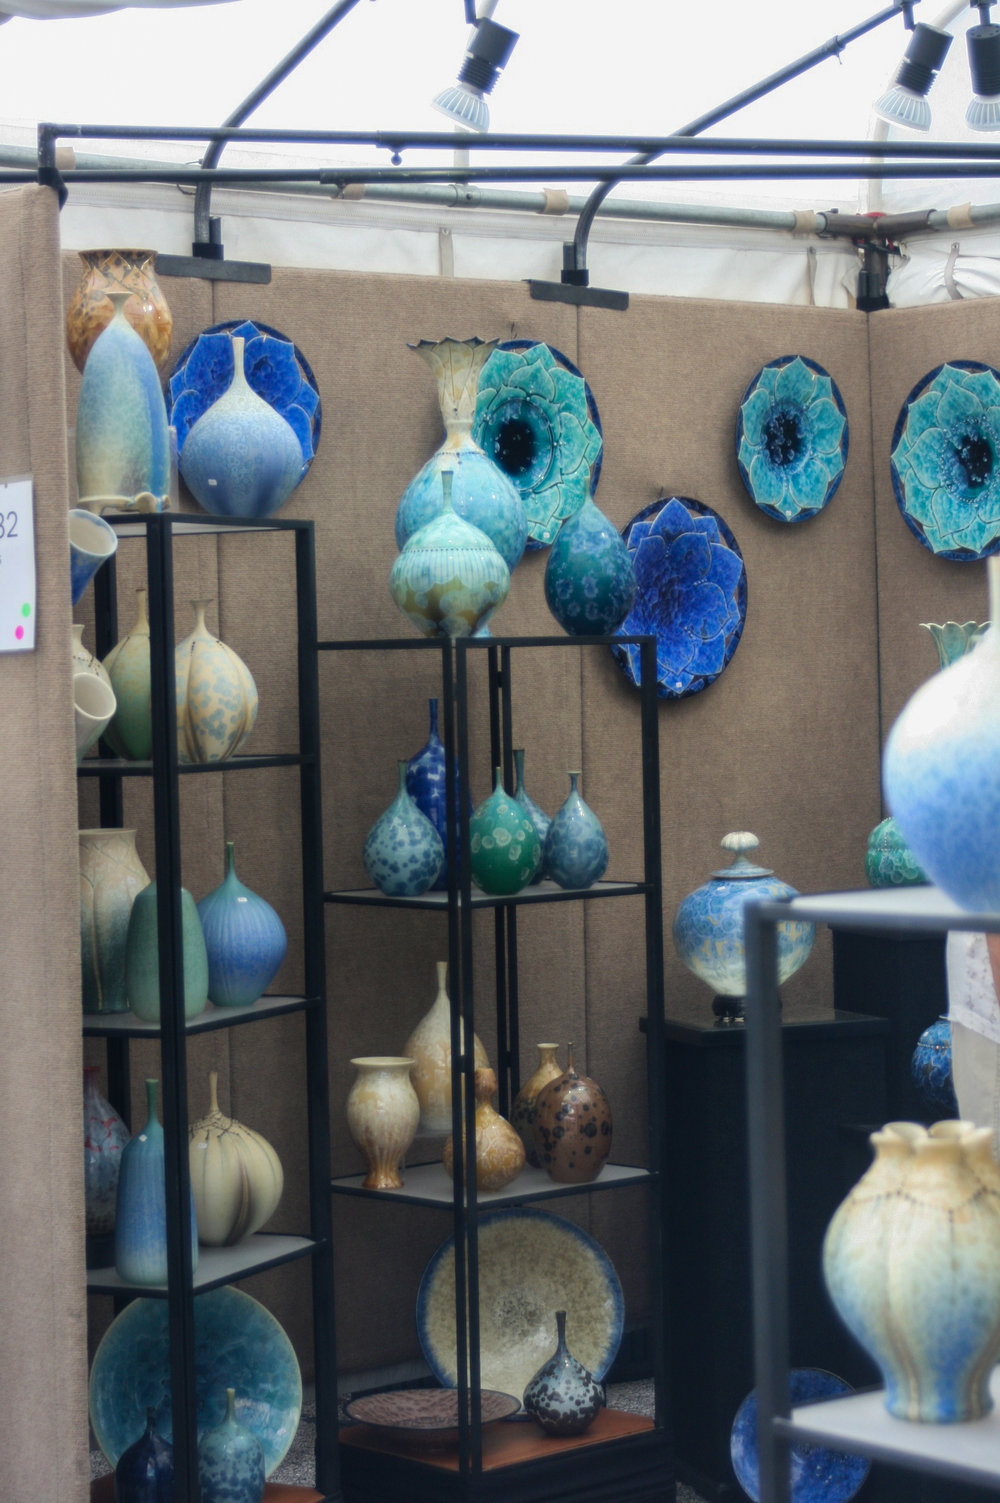 ARTISTS - Showcasing 130 nationally recognized artists who love Peoria! Original works of art will include jewelry, painting, ceramics, photography, digital art, printmaking, mixed media, metal, glass, wood, sculpture, fiber, leather, and wearable fiber.